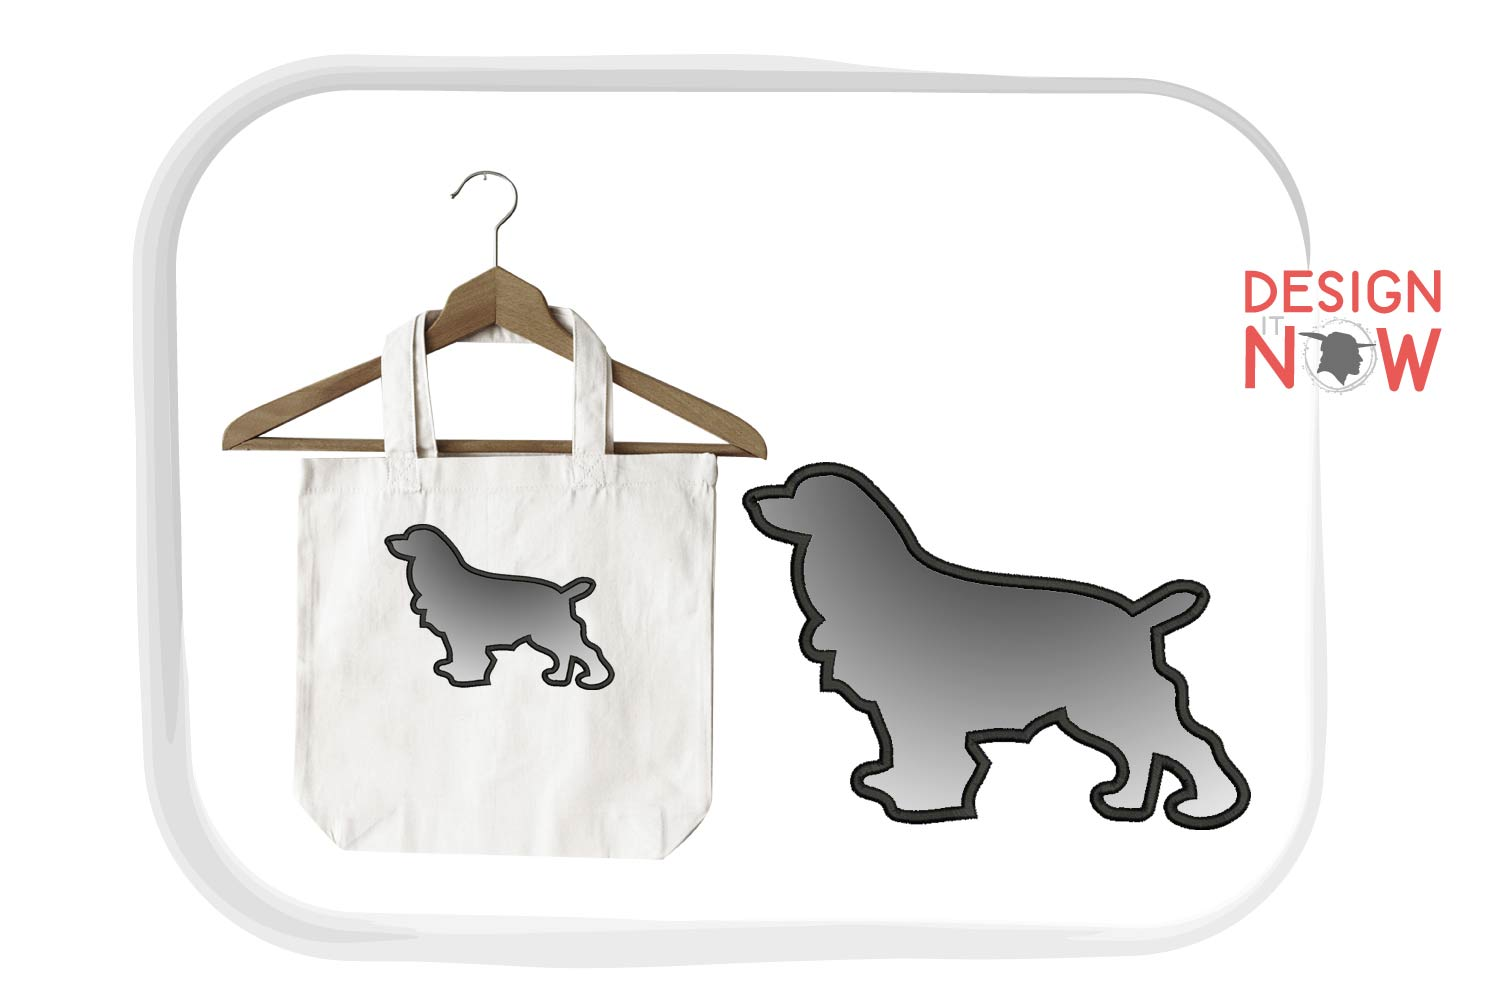 Dog Applique Embroidery Design, Dog Embroidery Pattern example image 1